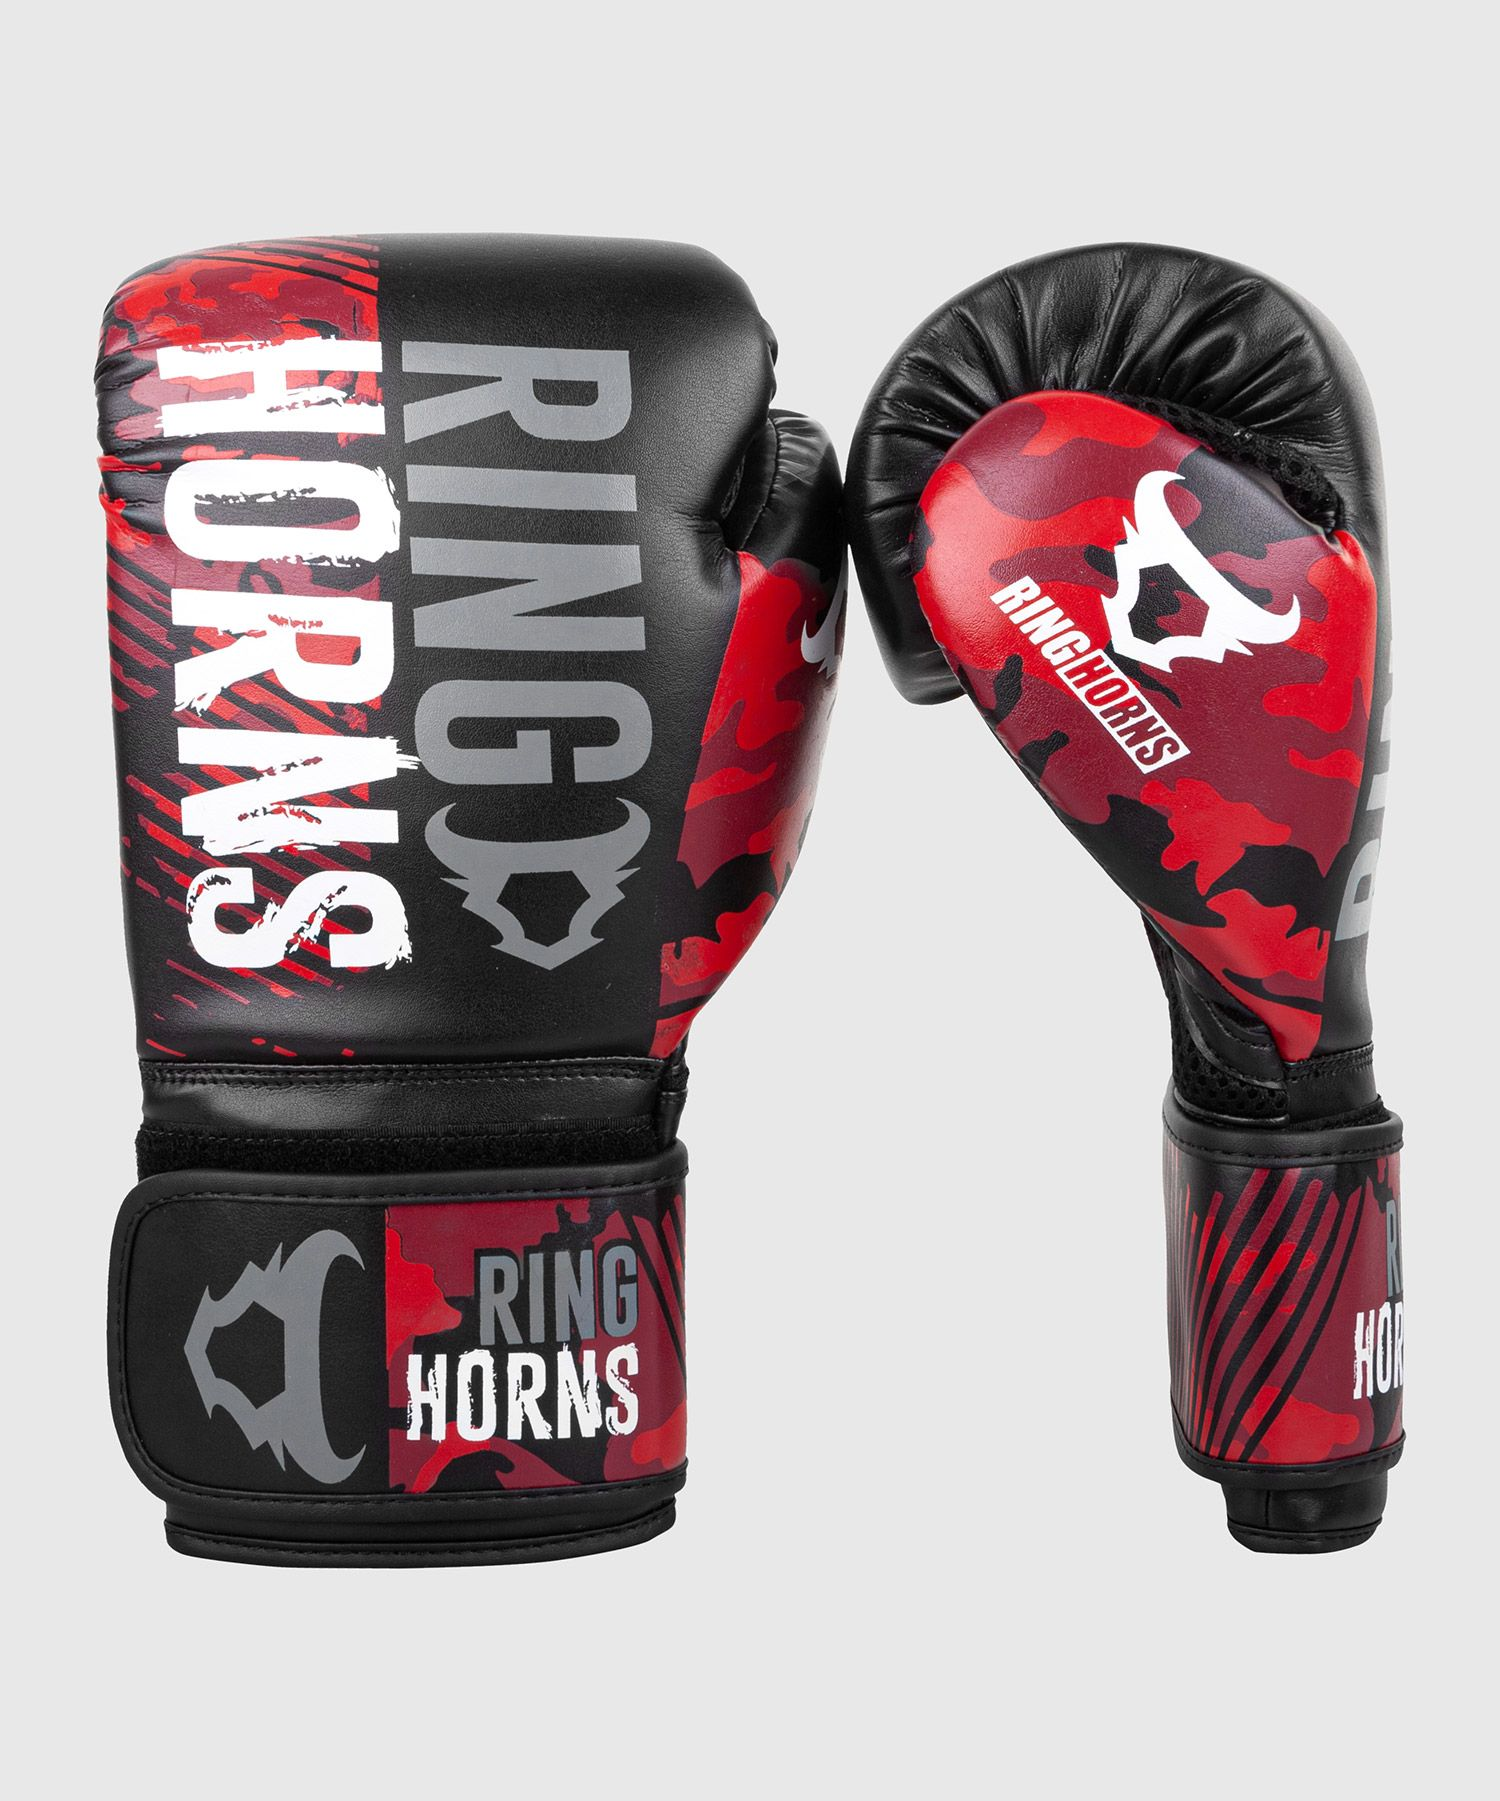 Ringhorns Charger Camo Boxing Gloves - Black/Red